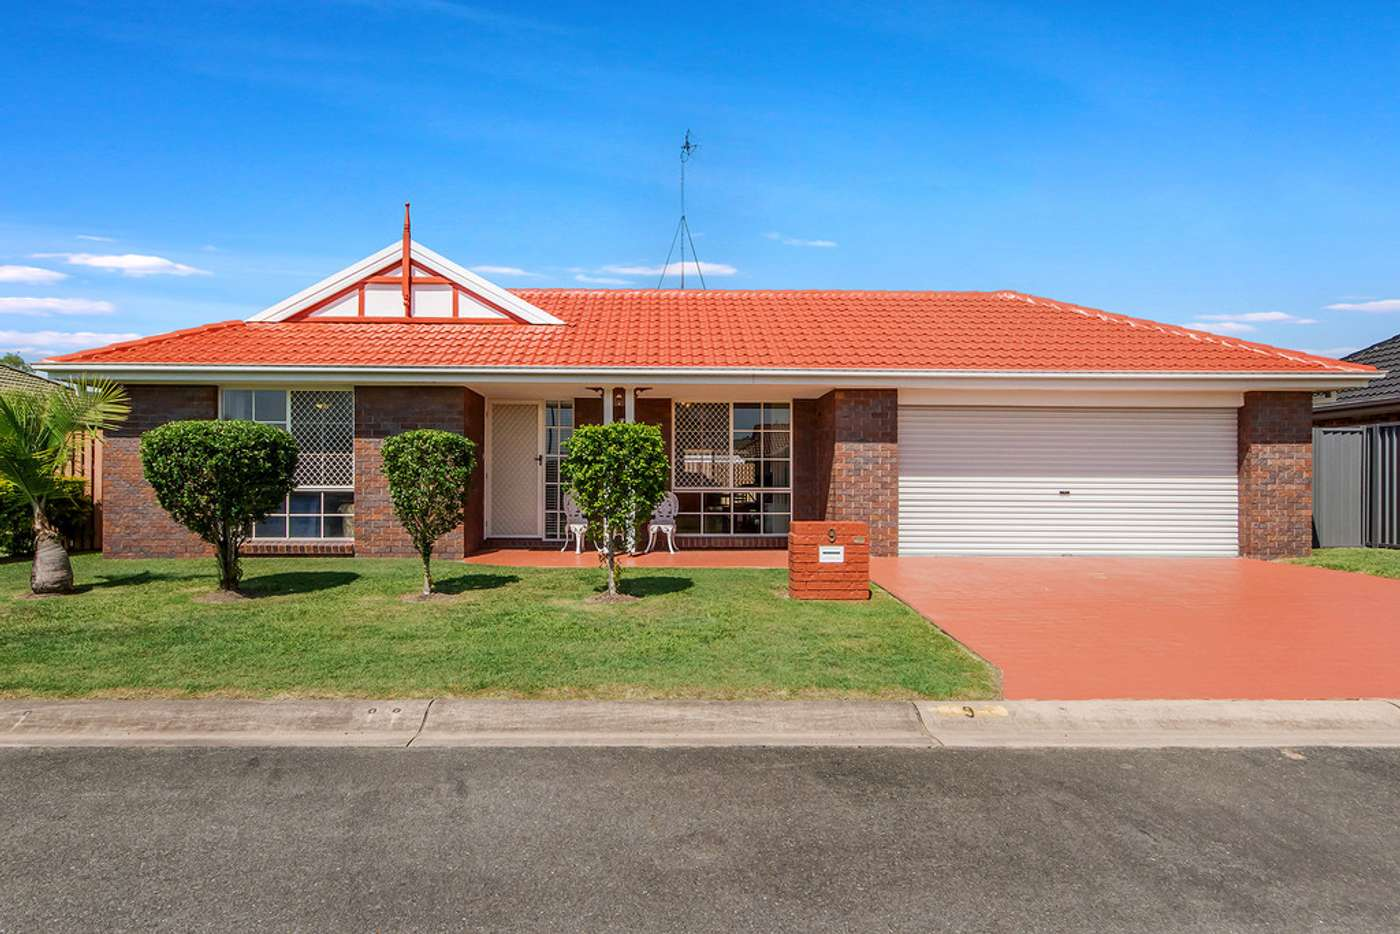 Main view of Homely house listing, 9 Talgai Place, Merrimac QLD 4226